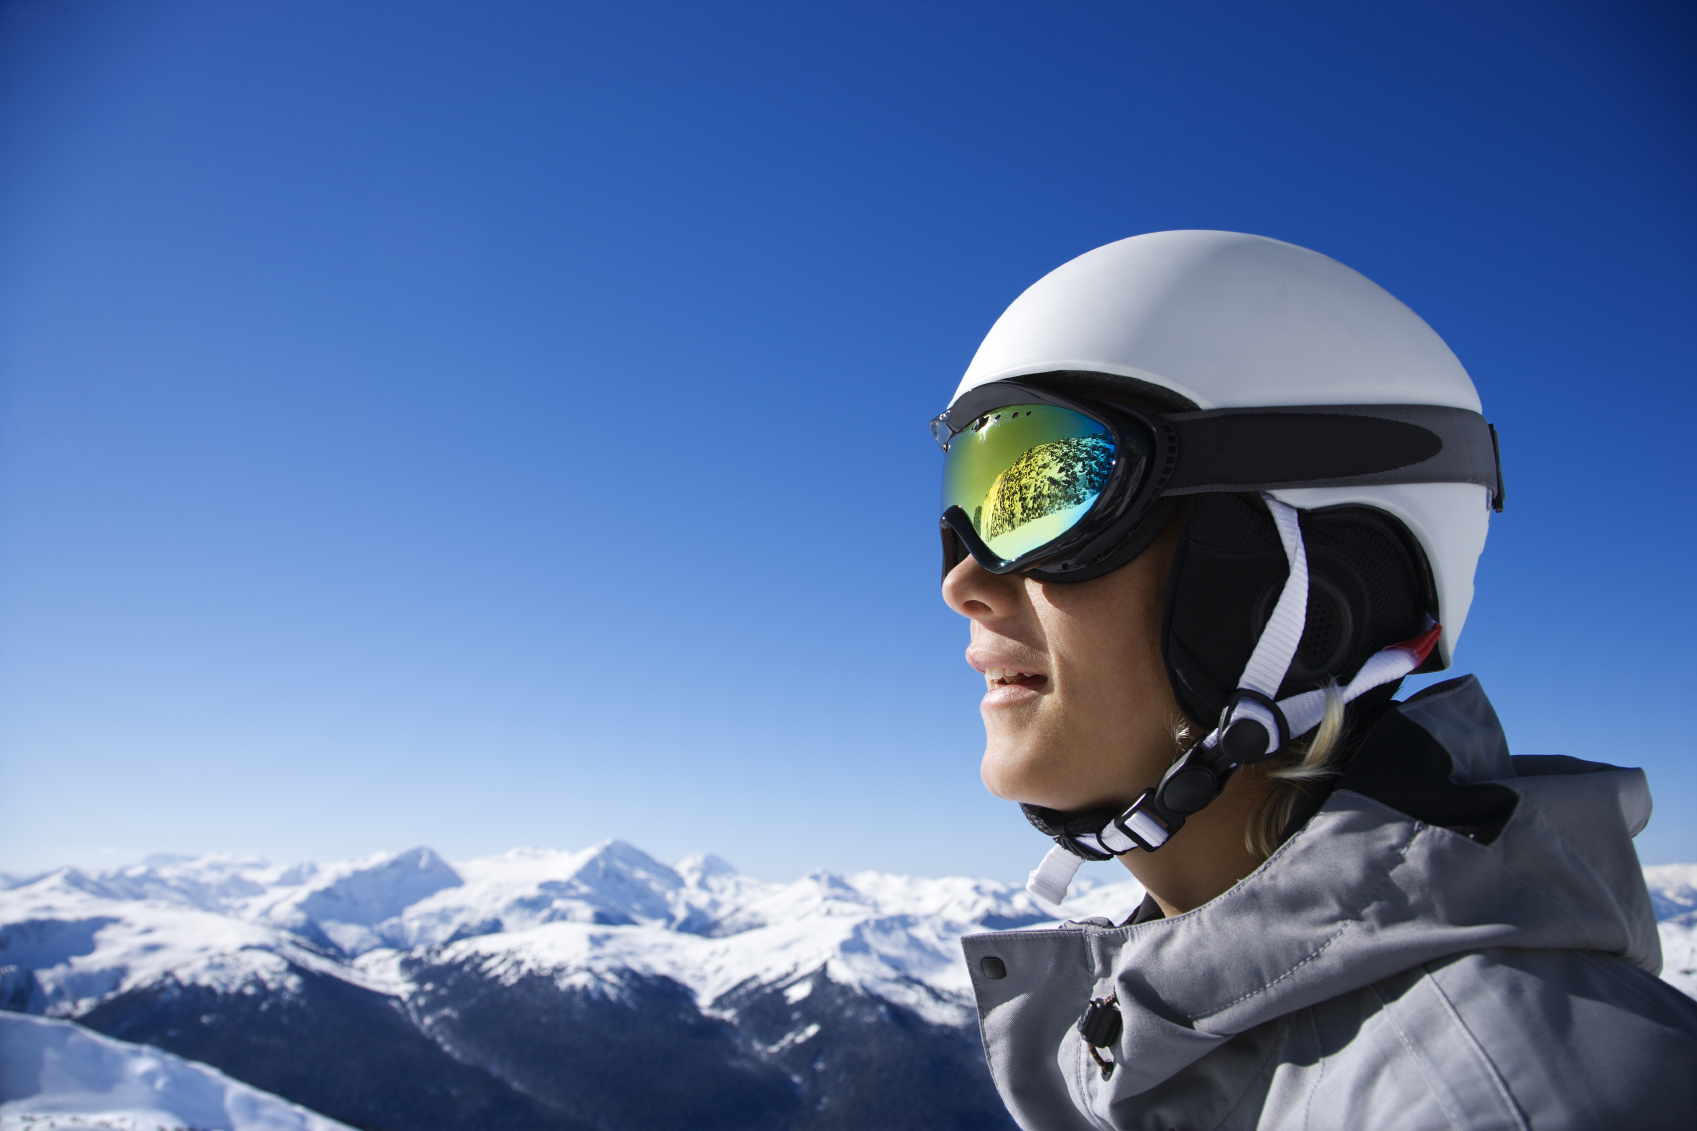 Study Ski Helmets Are Not Reducing Head Injures As Much